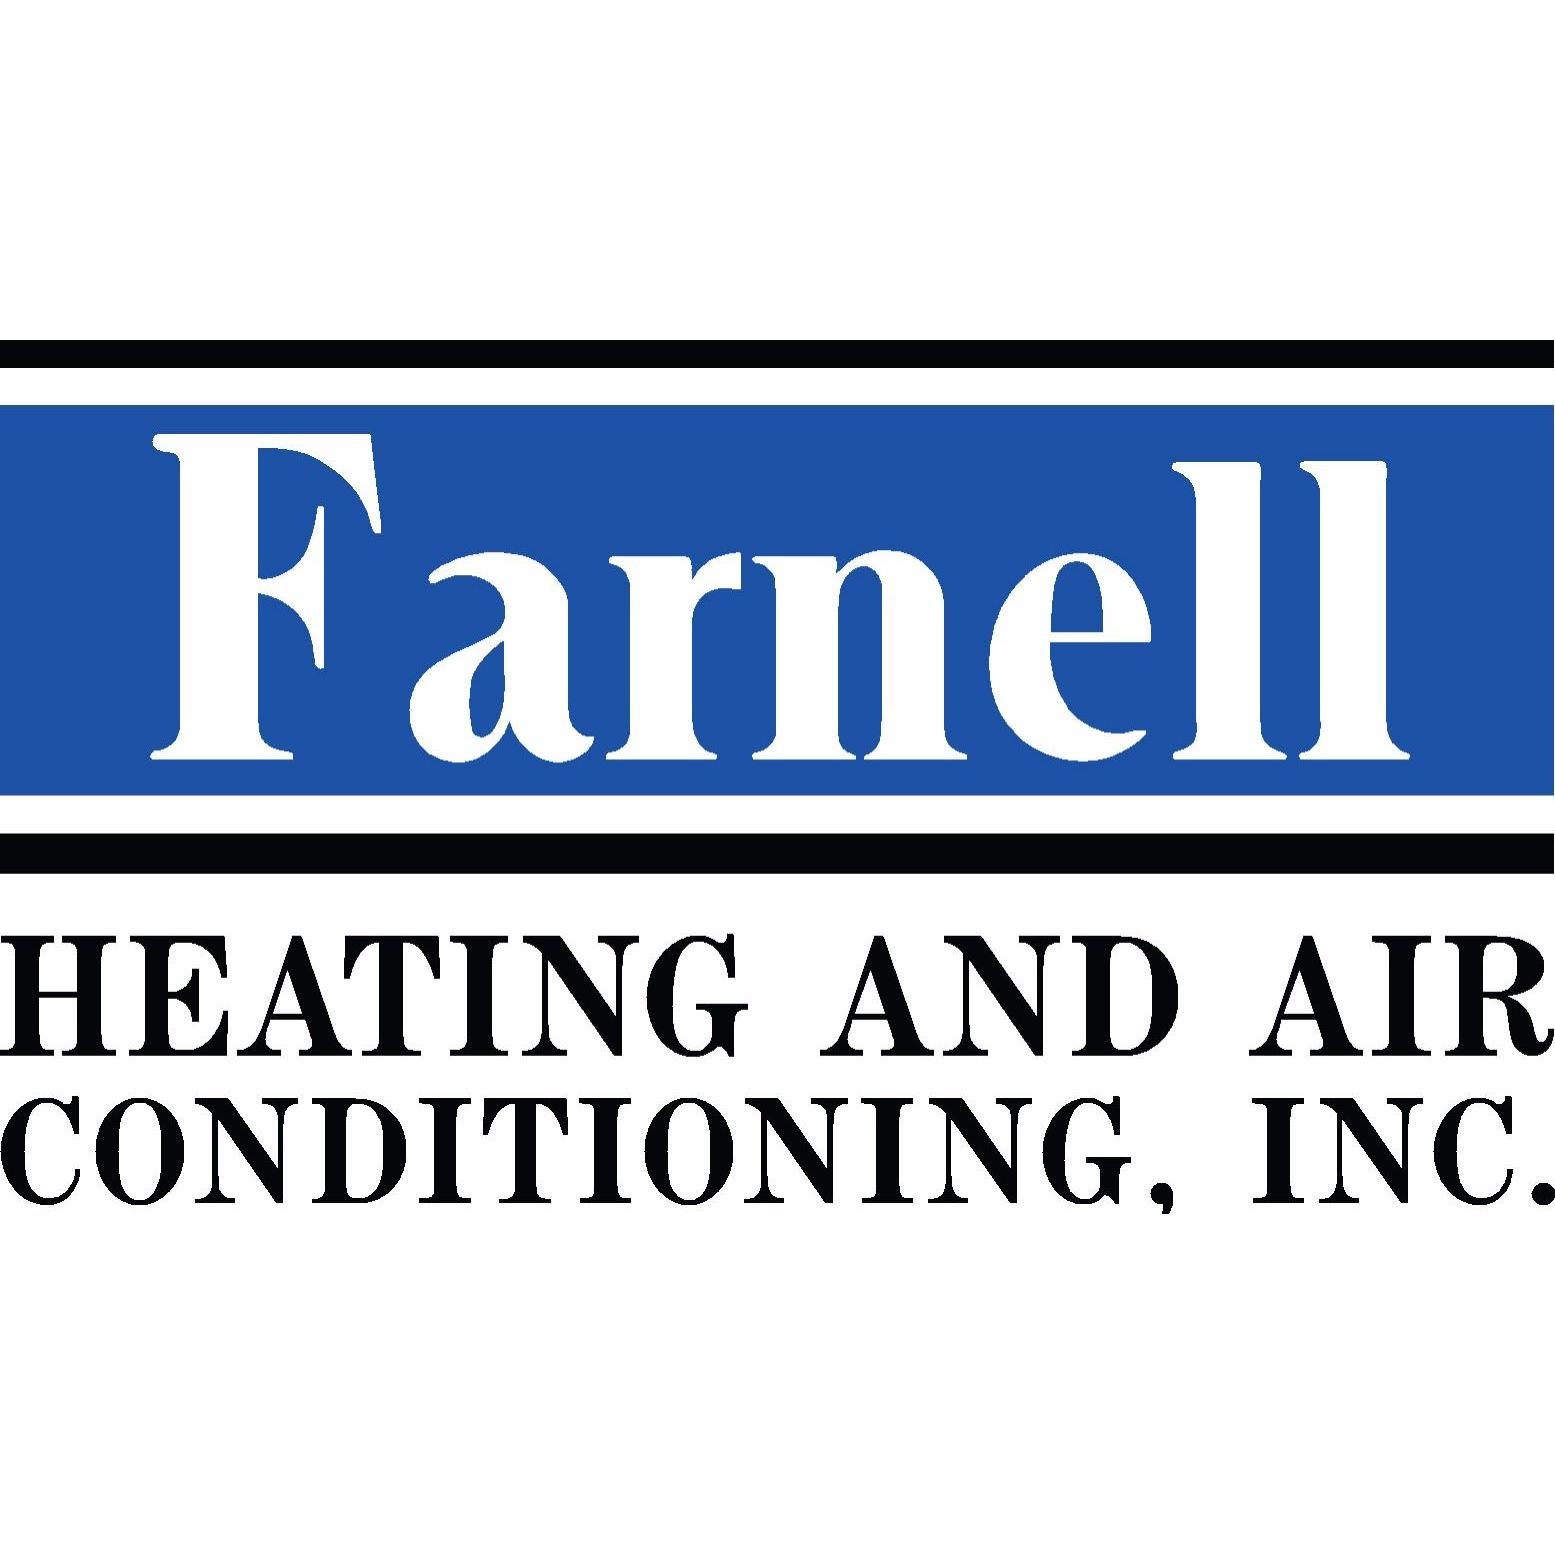 Farnell Heating and Air Conditioning, Inc.